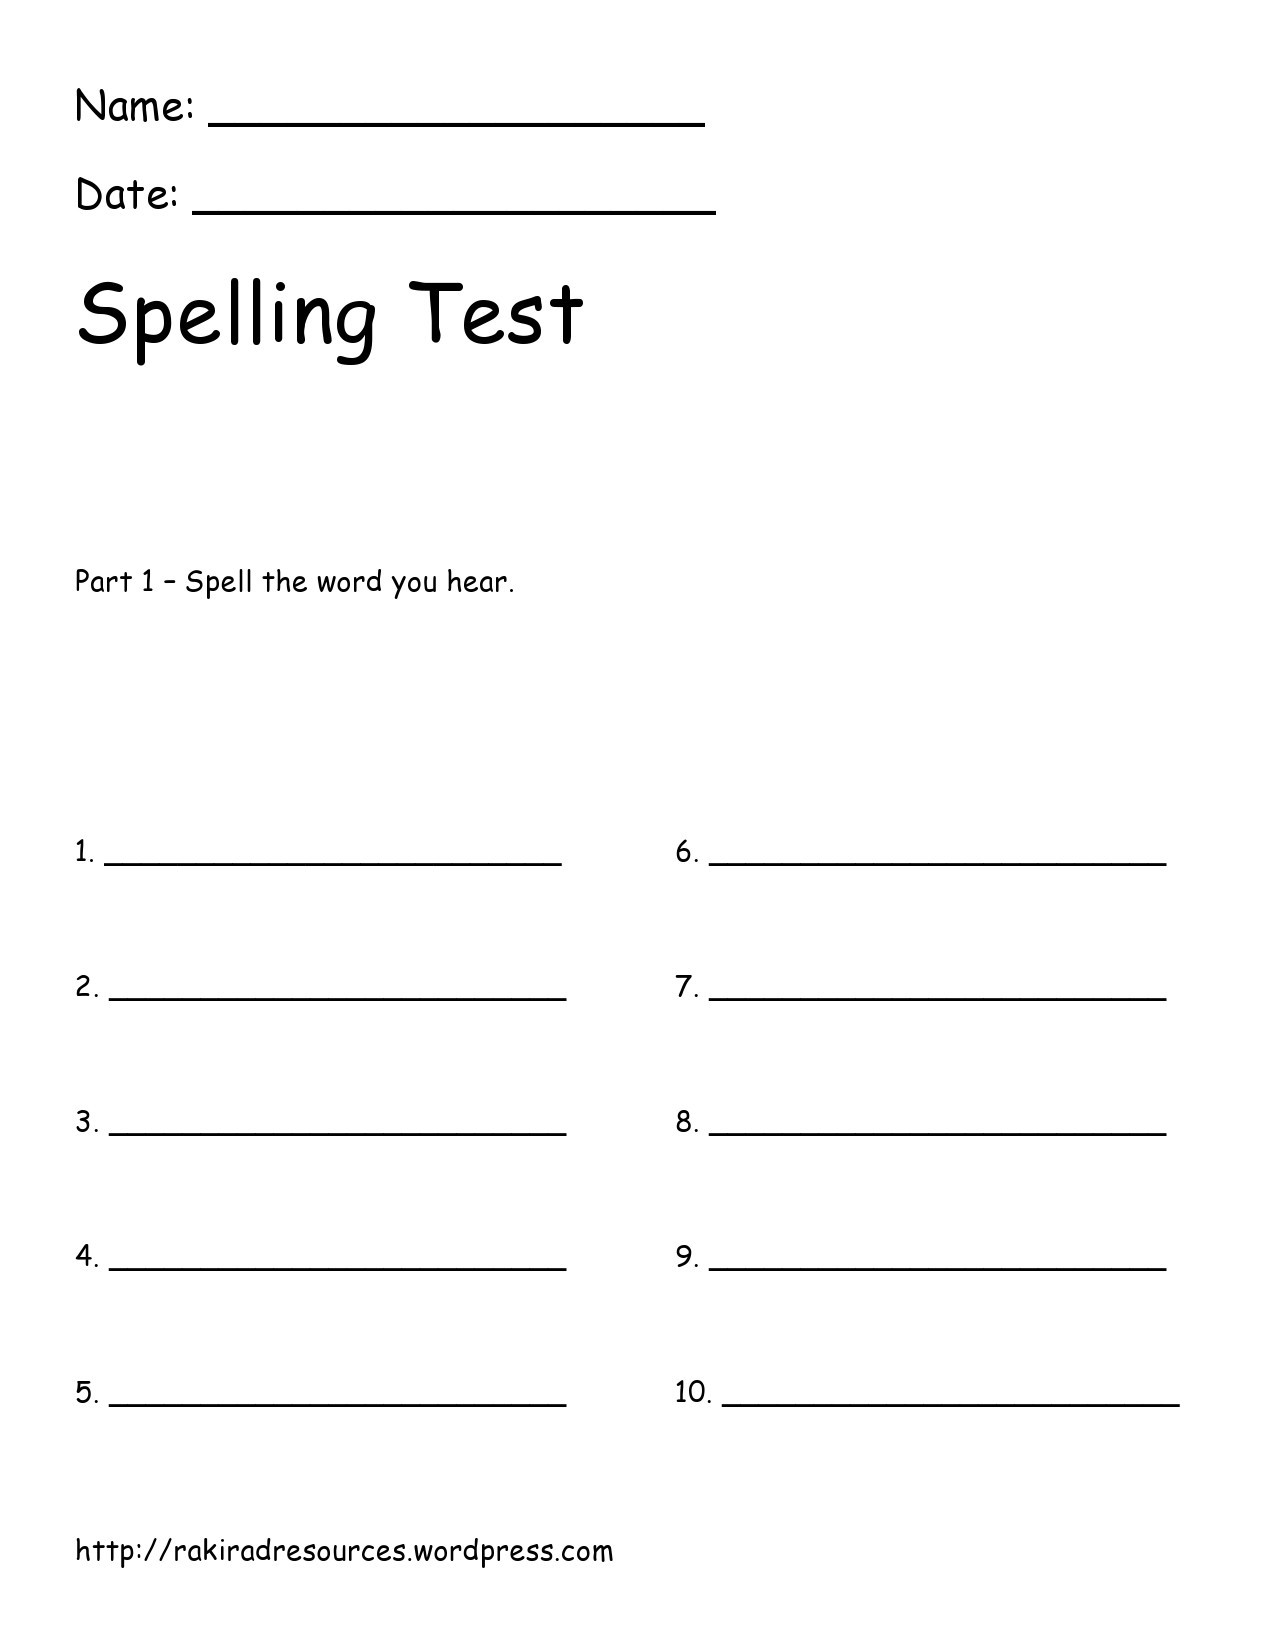 Free spelling test template 28